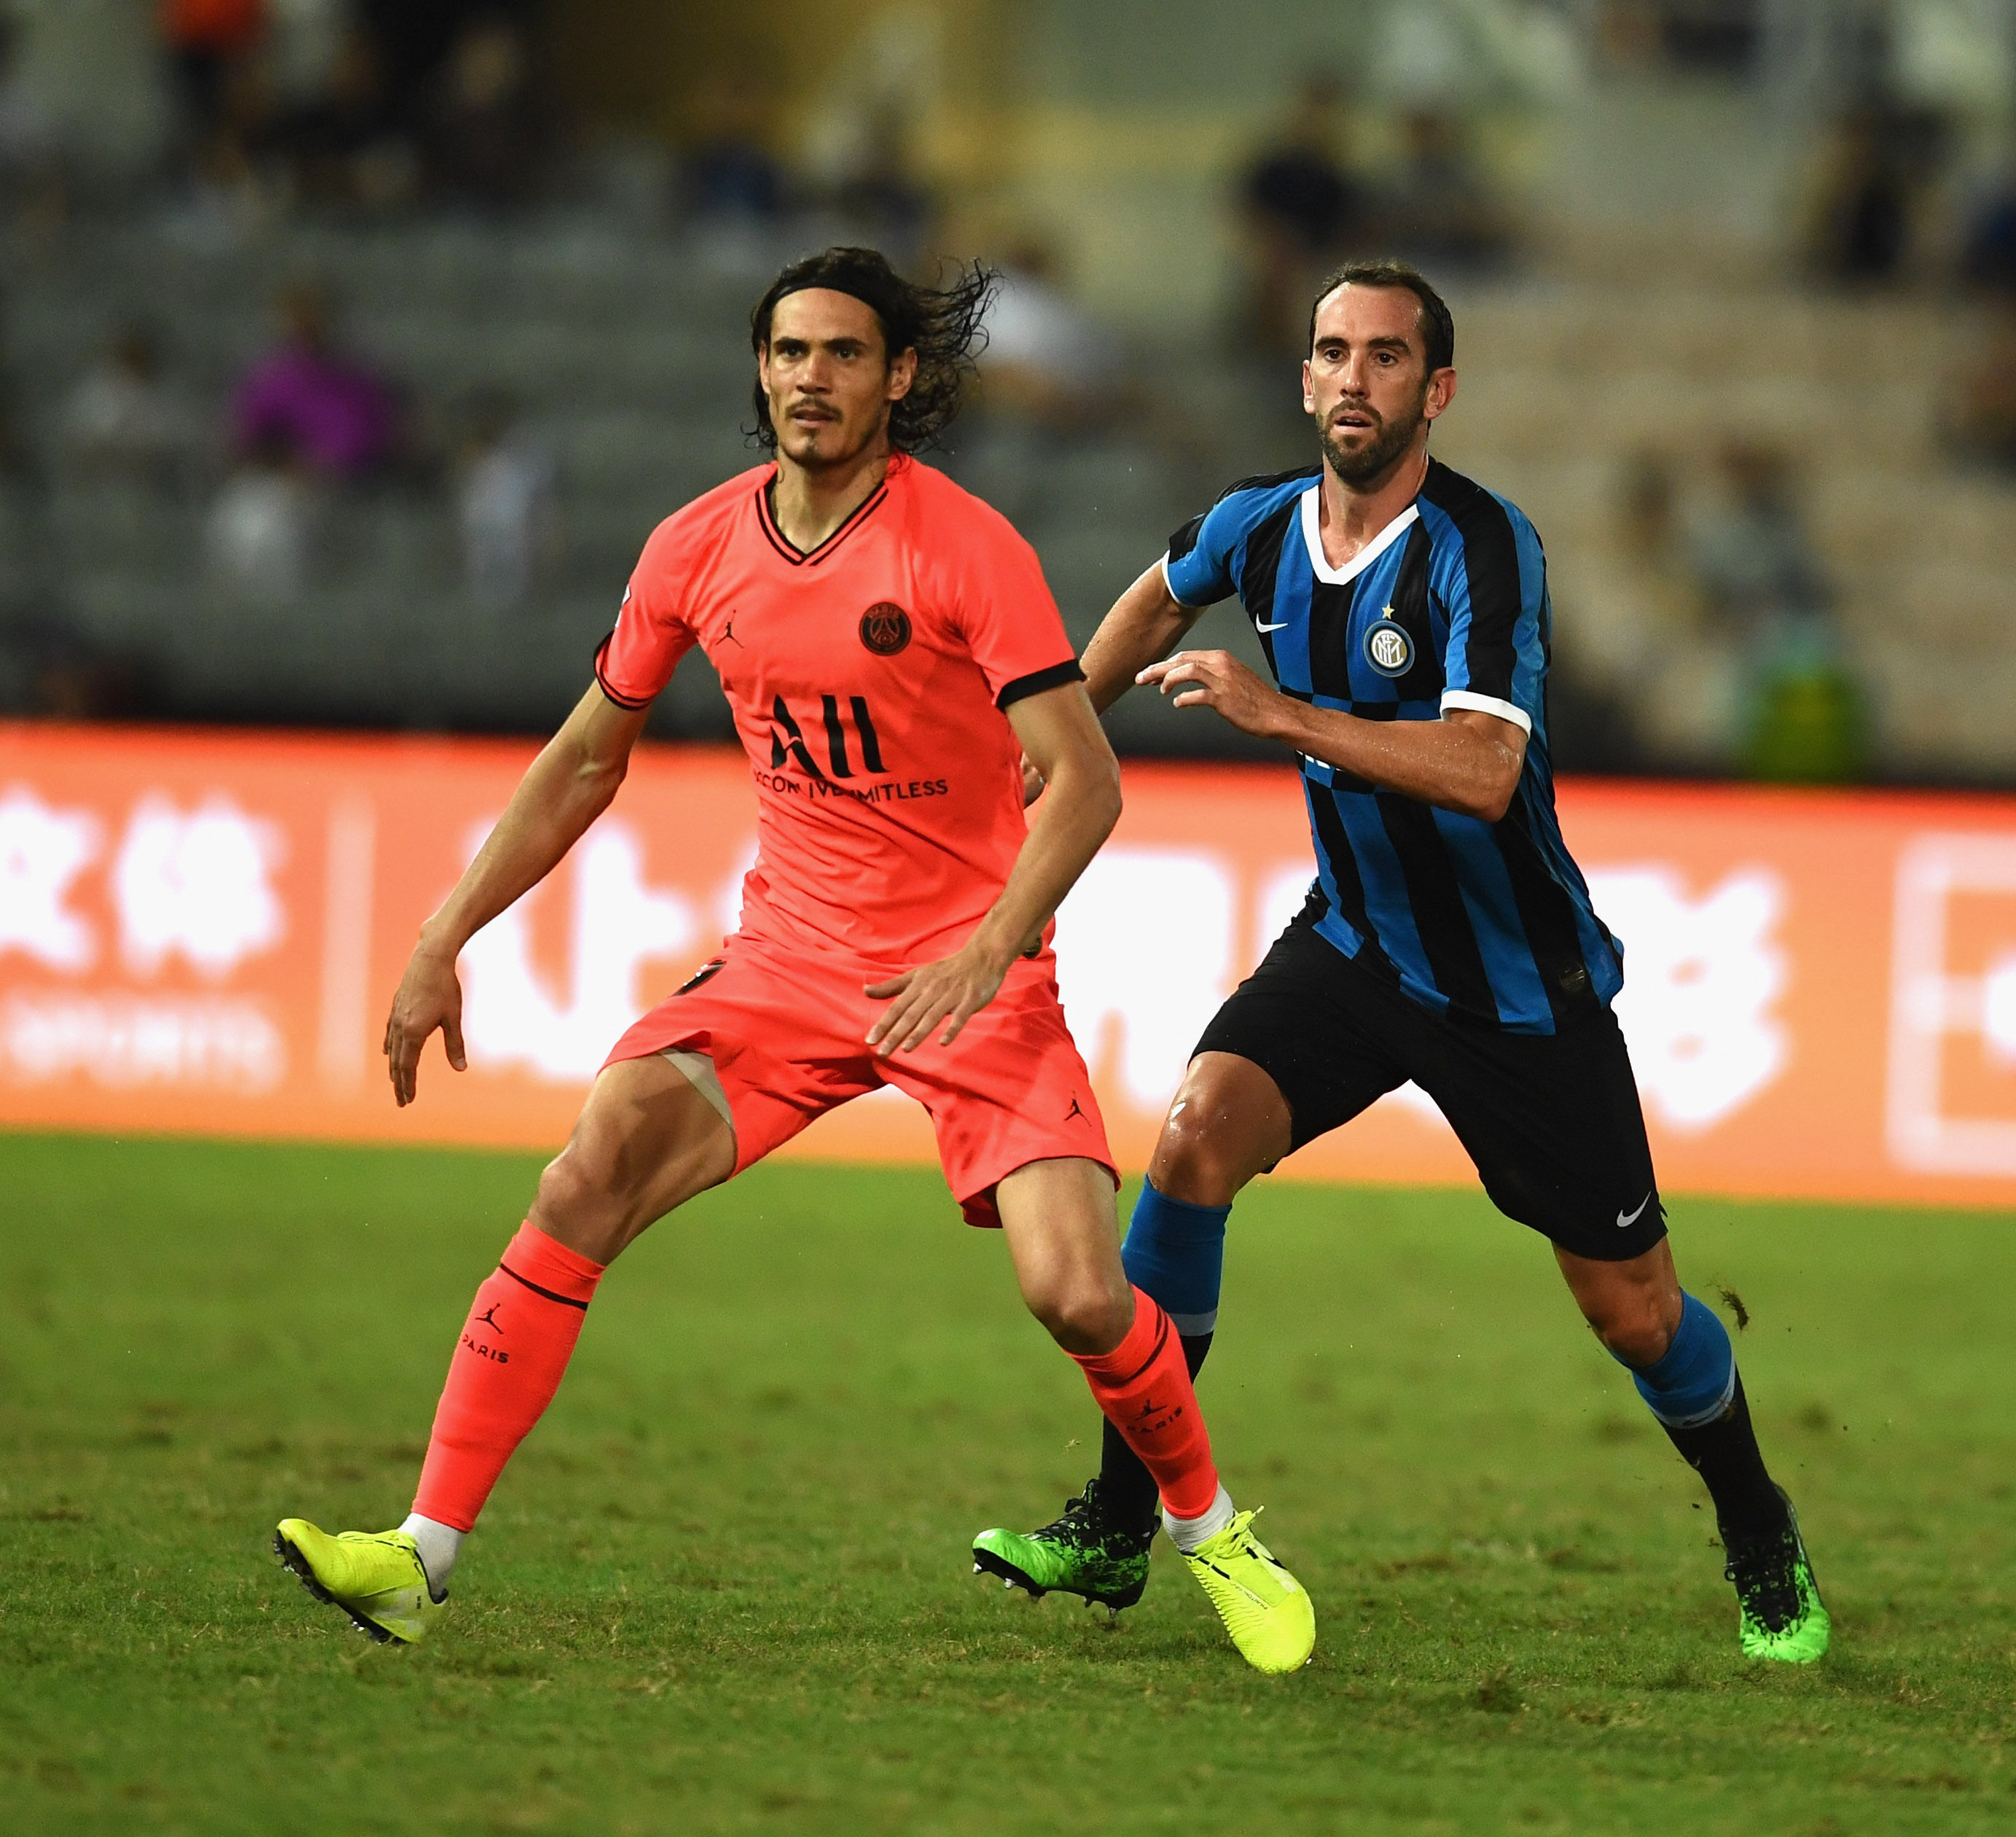 The photos from Inter vs. PSG